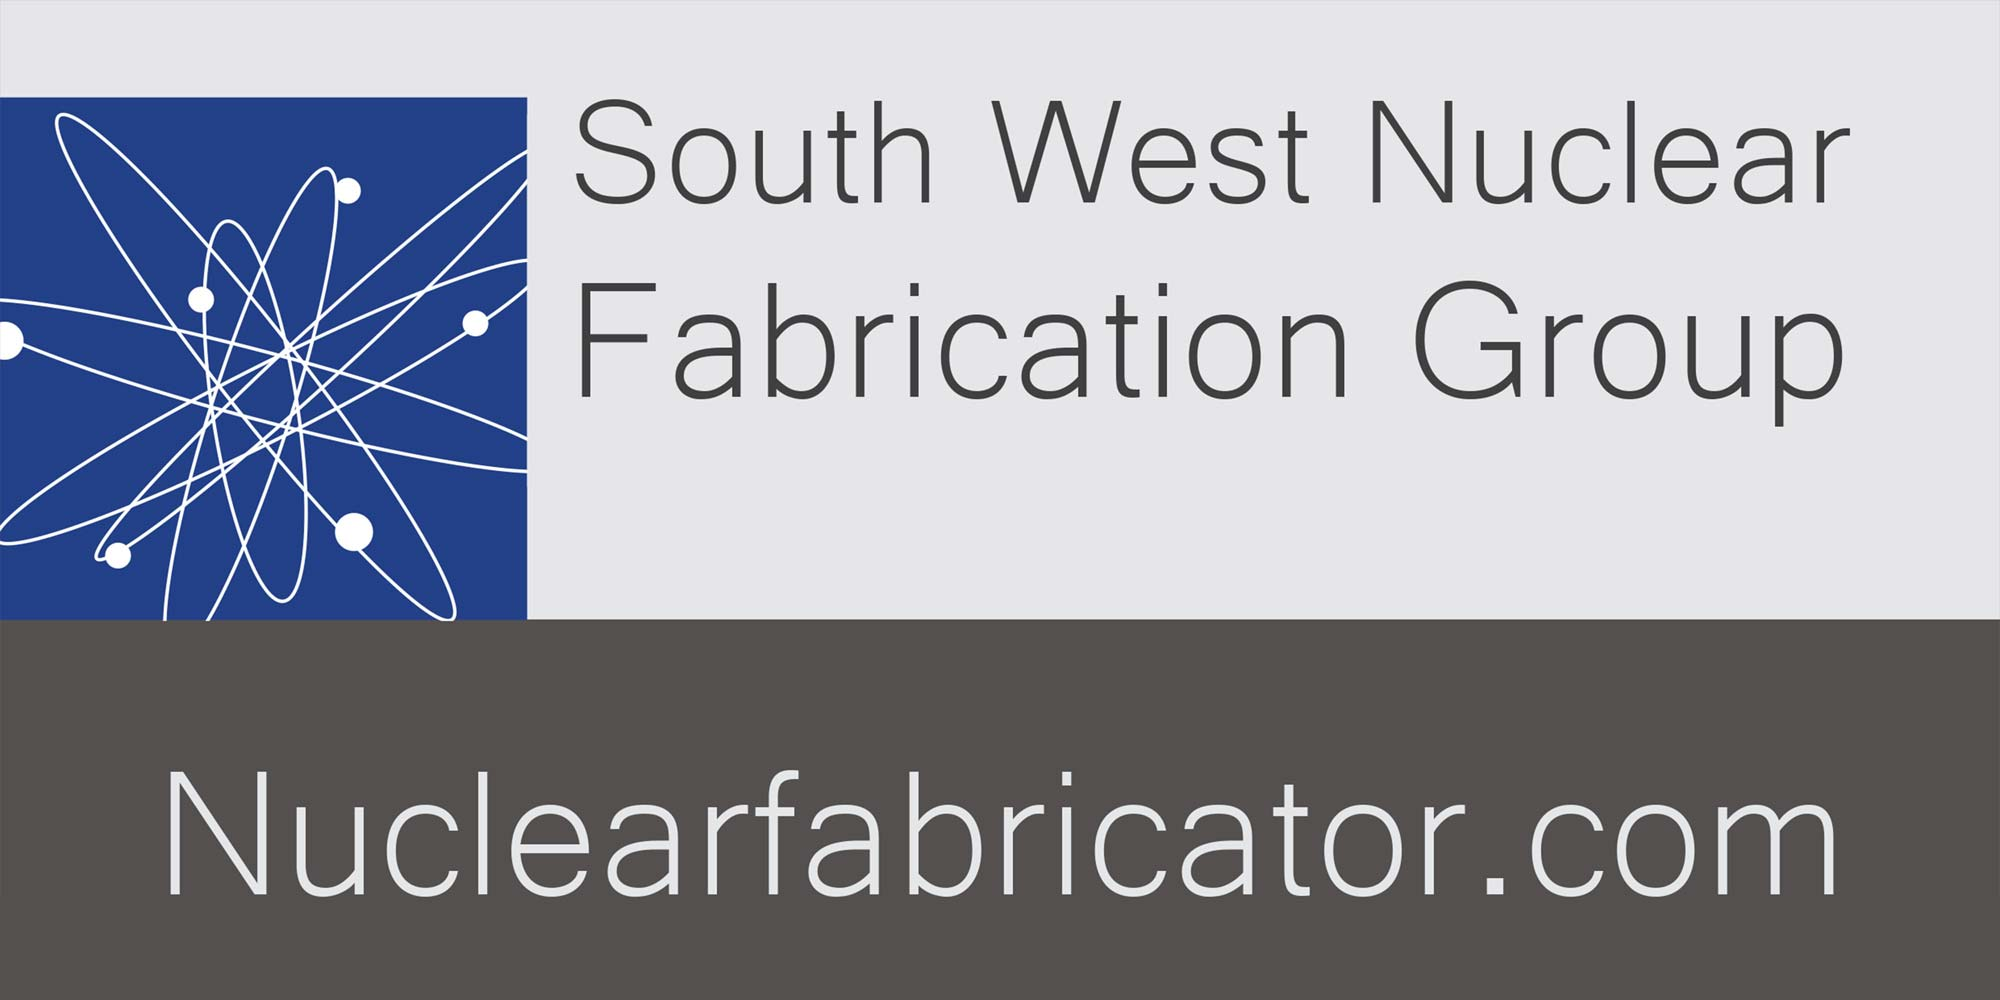 South West Nuclear Fabrication Group